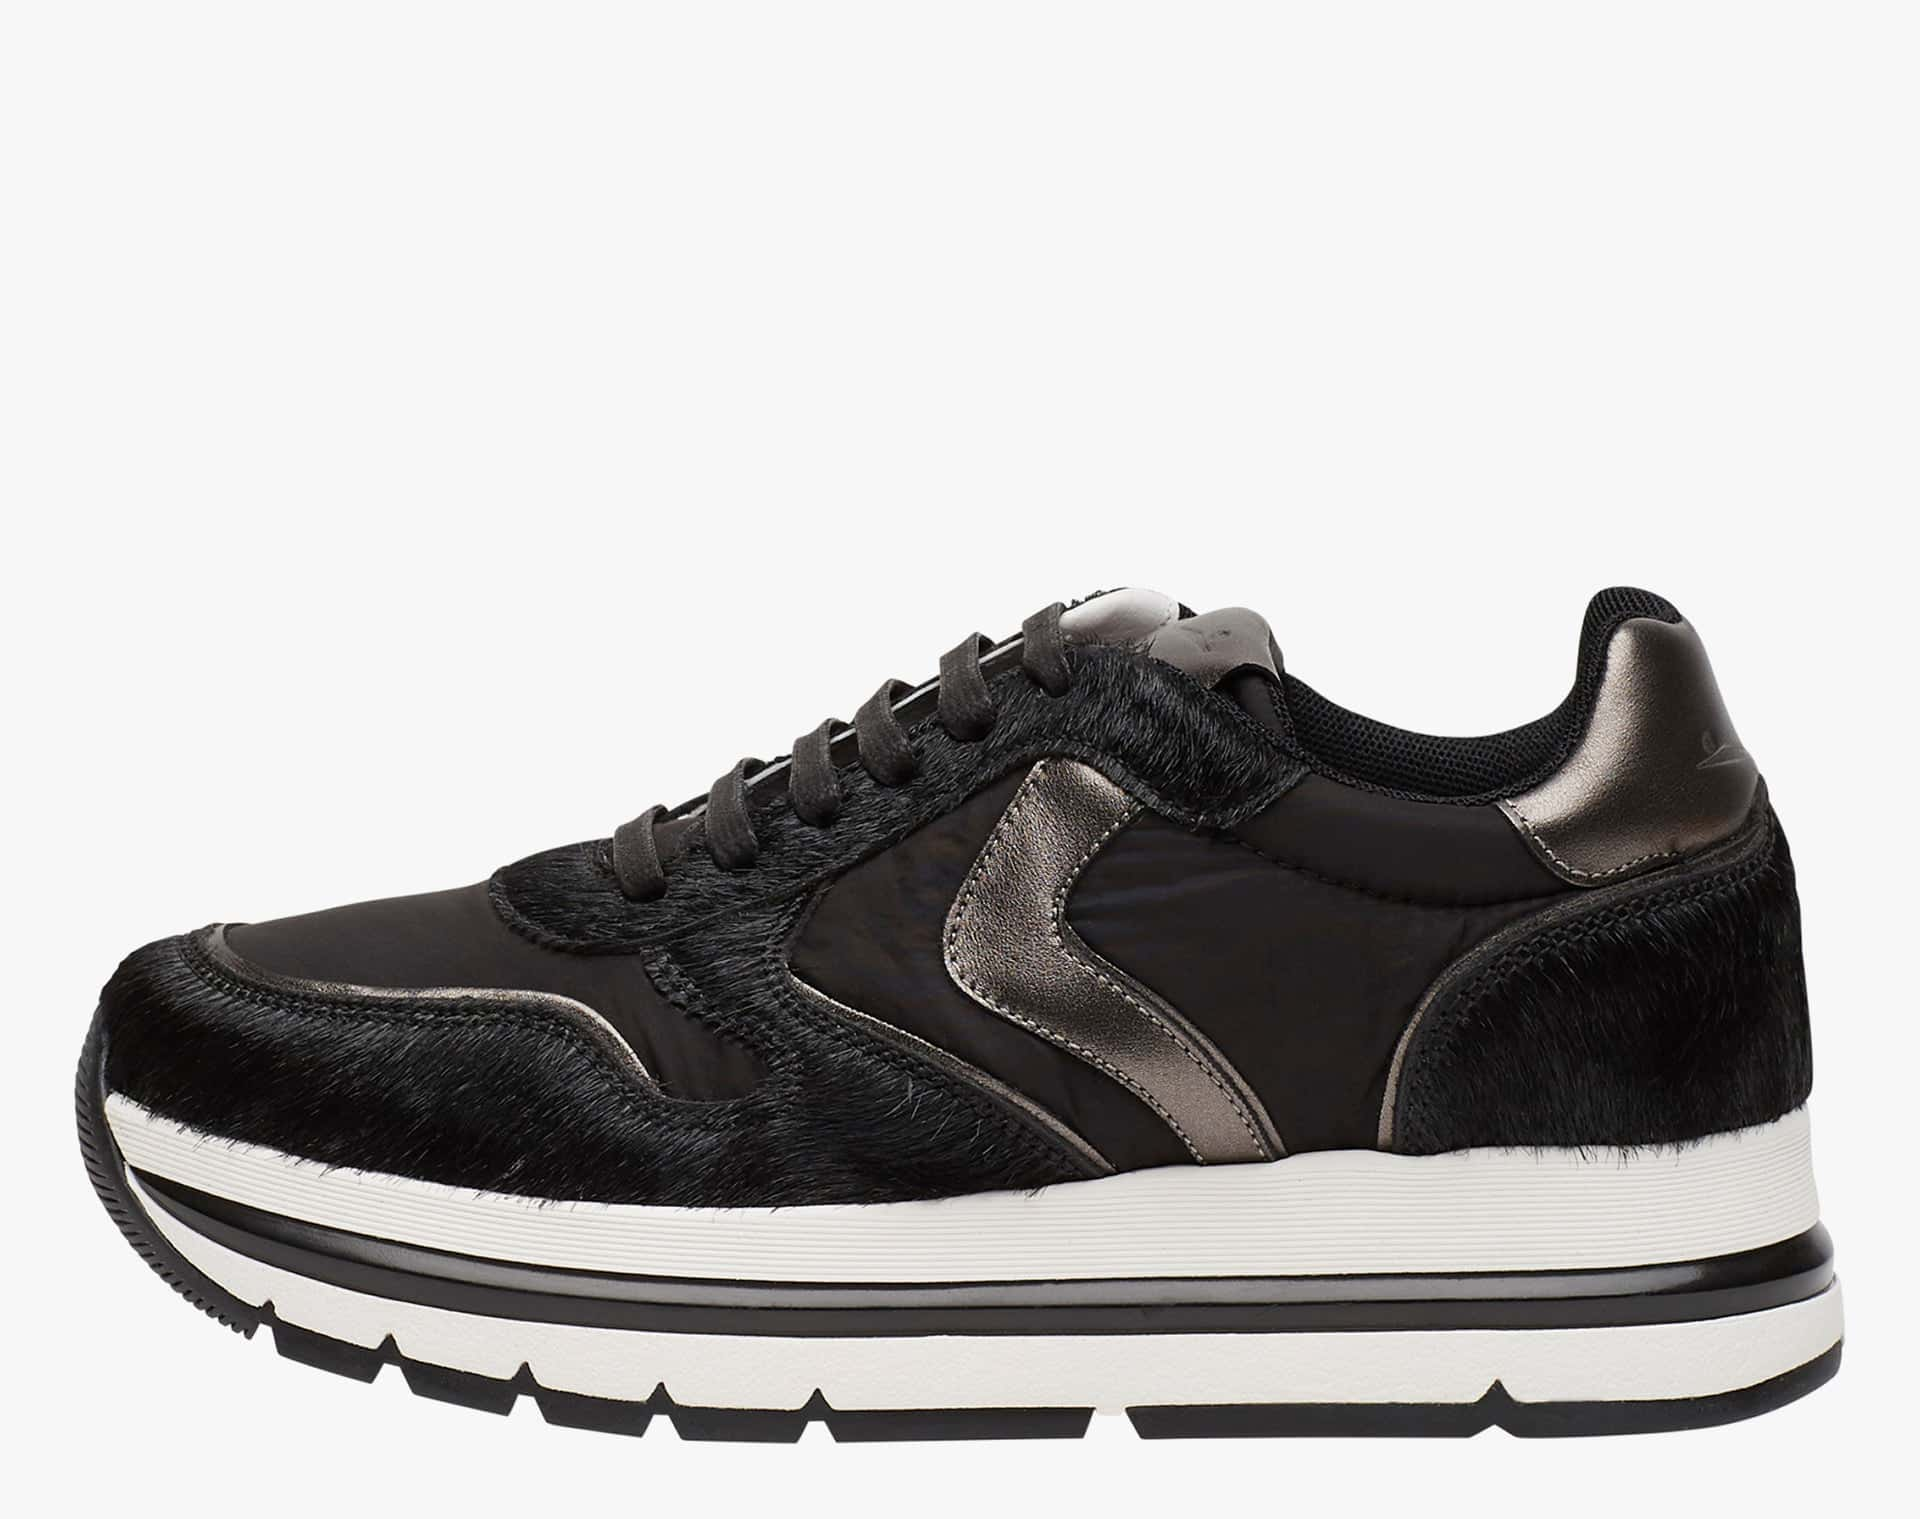 APRILLE - Sneakers in leather and laminate - BLACK-STEEL